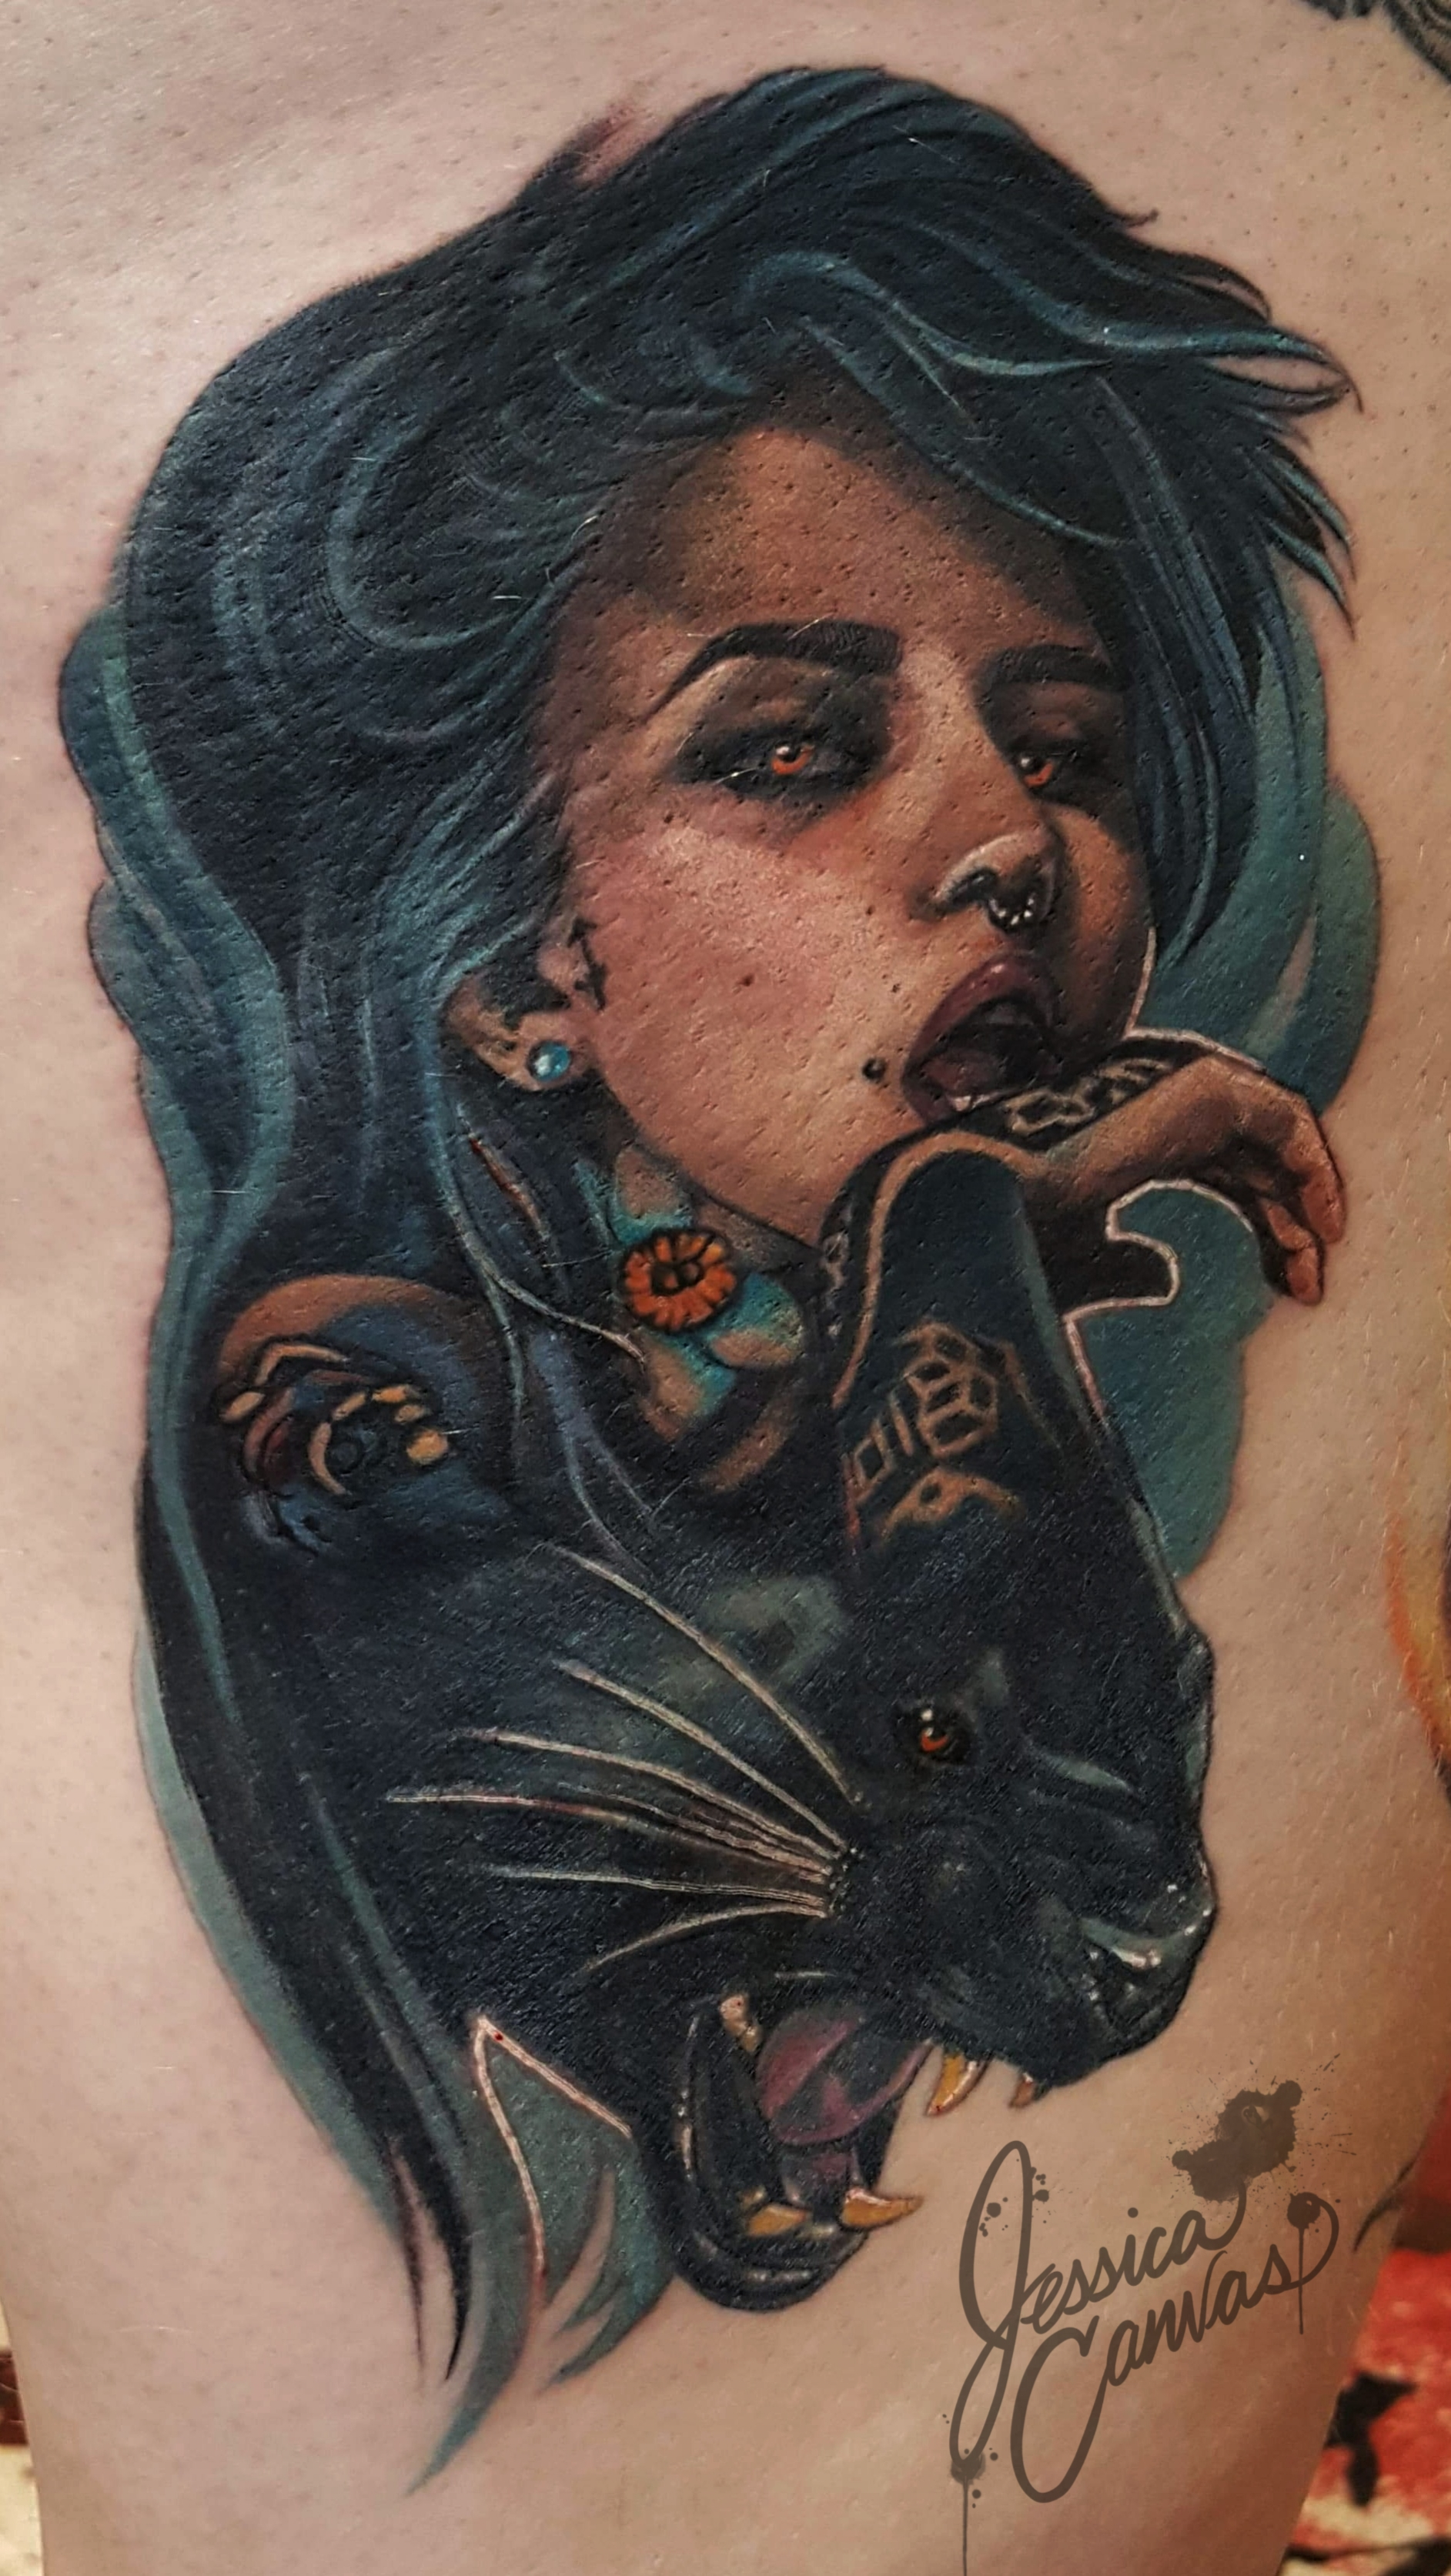 Fishball Suicide Black Panther Lady Morp